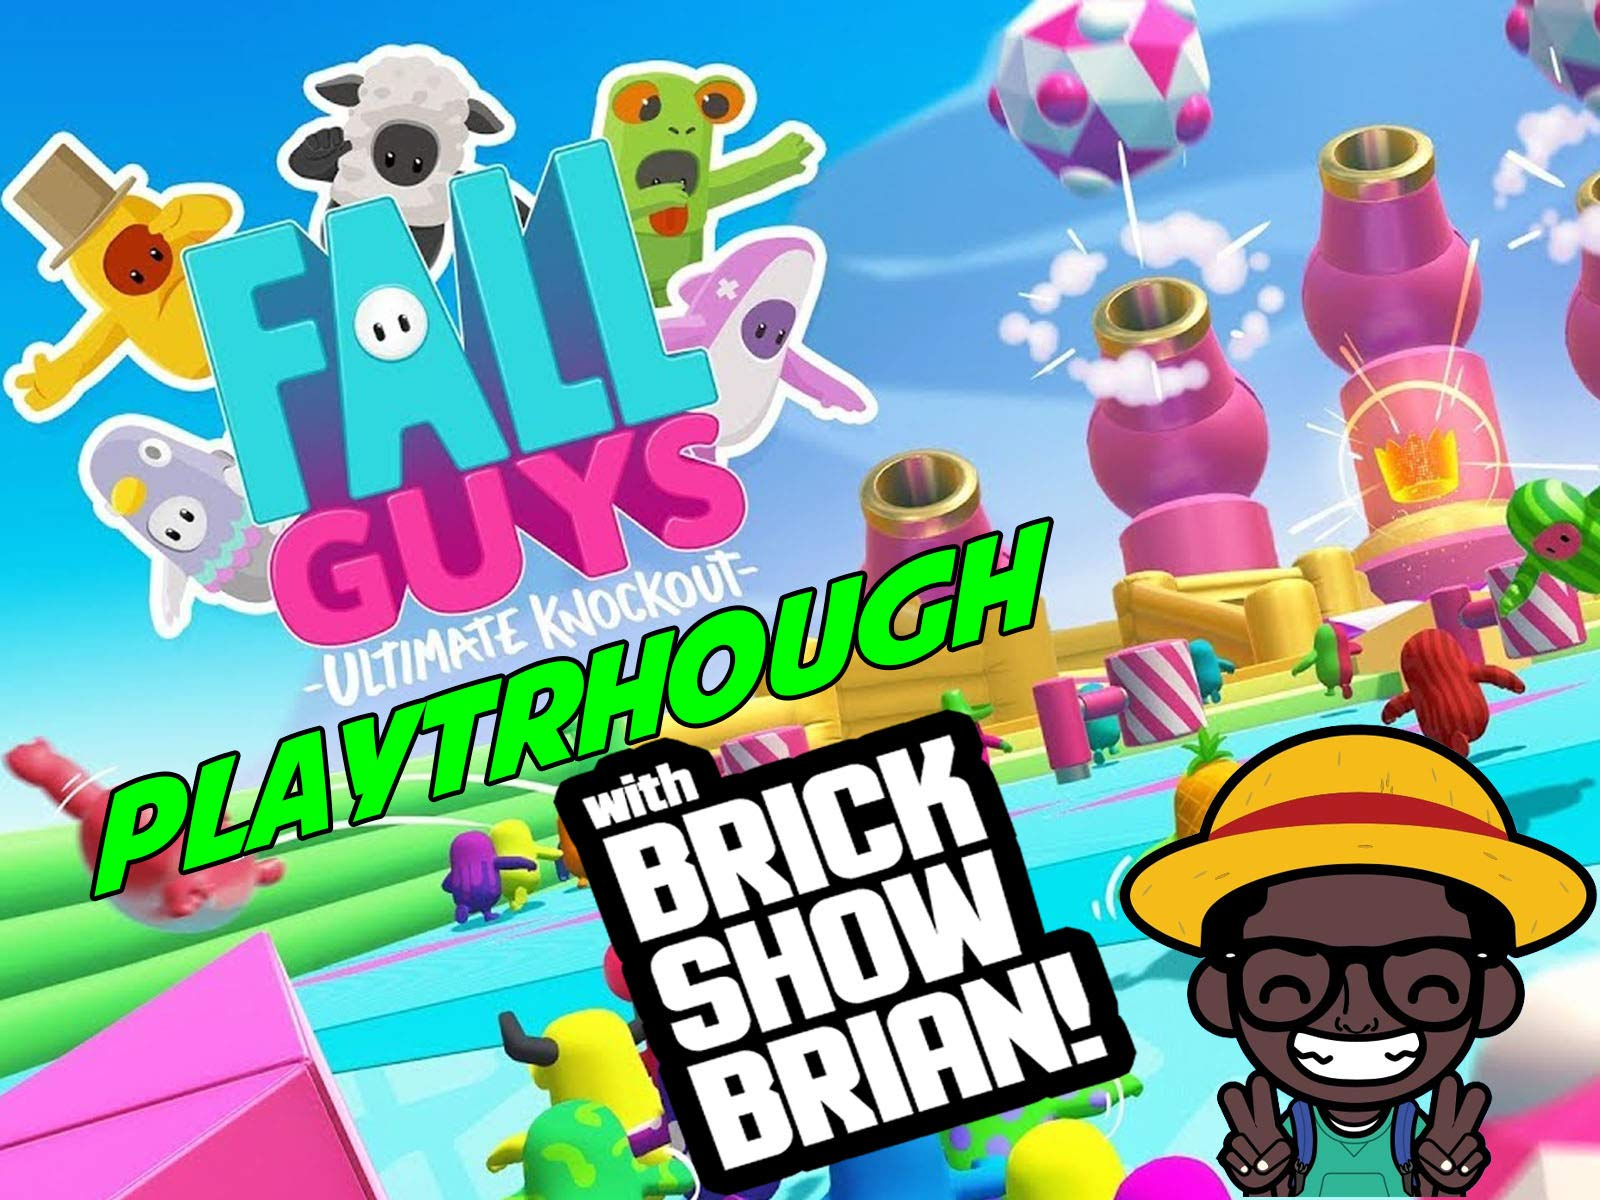 Fall Guys Playthrough With Brick Show Brian - Season 1